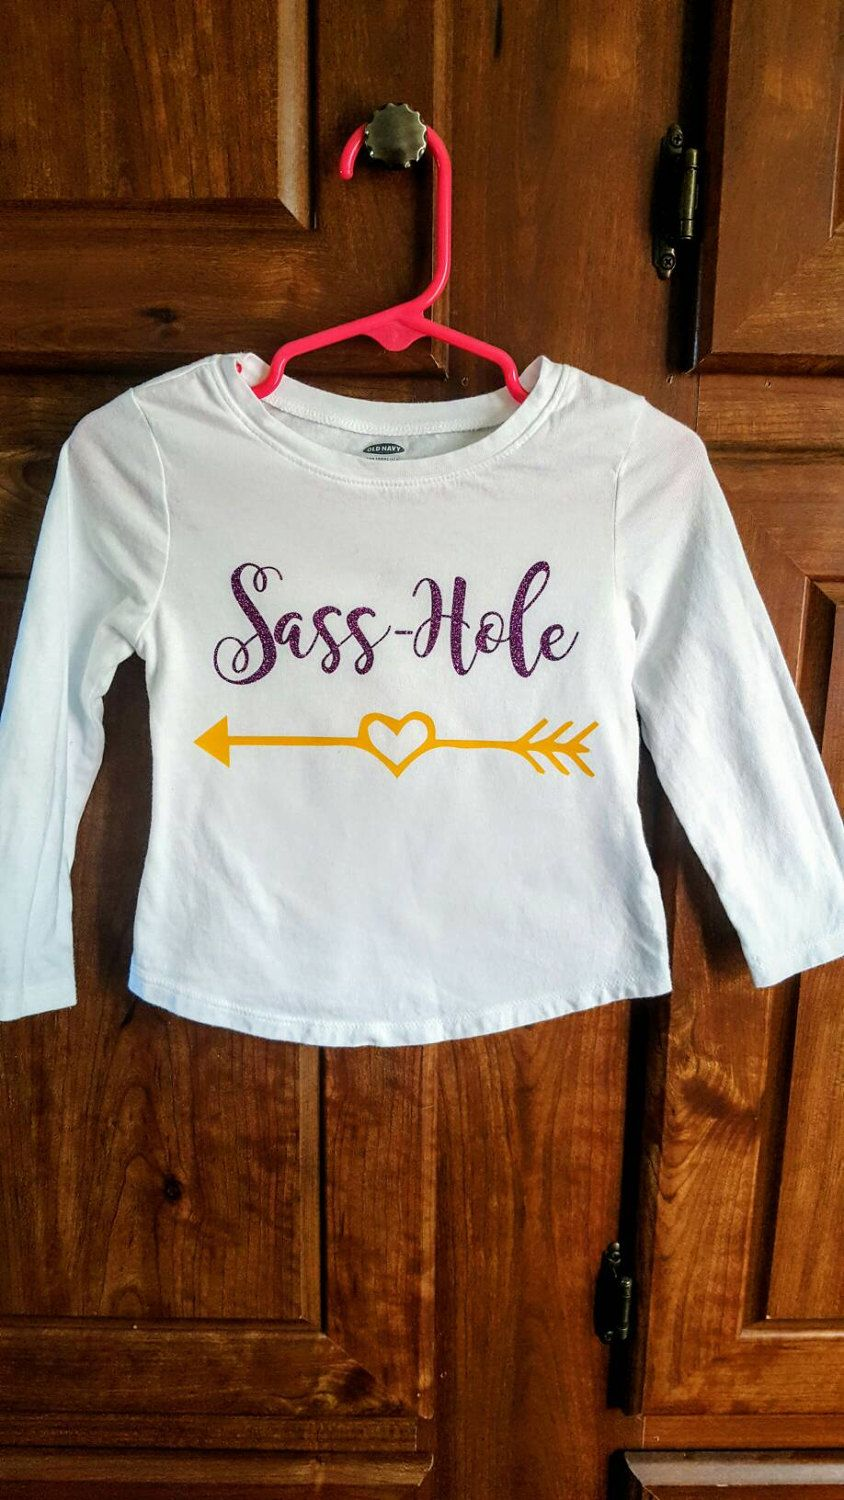 224b004f Toddler girl's shirt, Sass-hole, Personalized girls shirt, Girls clothing,  sassy girl, Toddler clothing, Girls shirt by LangCreations14 on Etsy